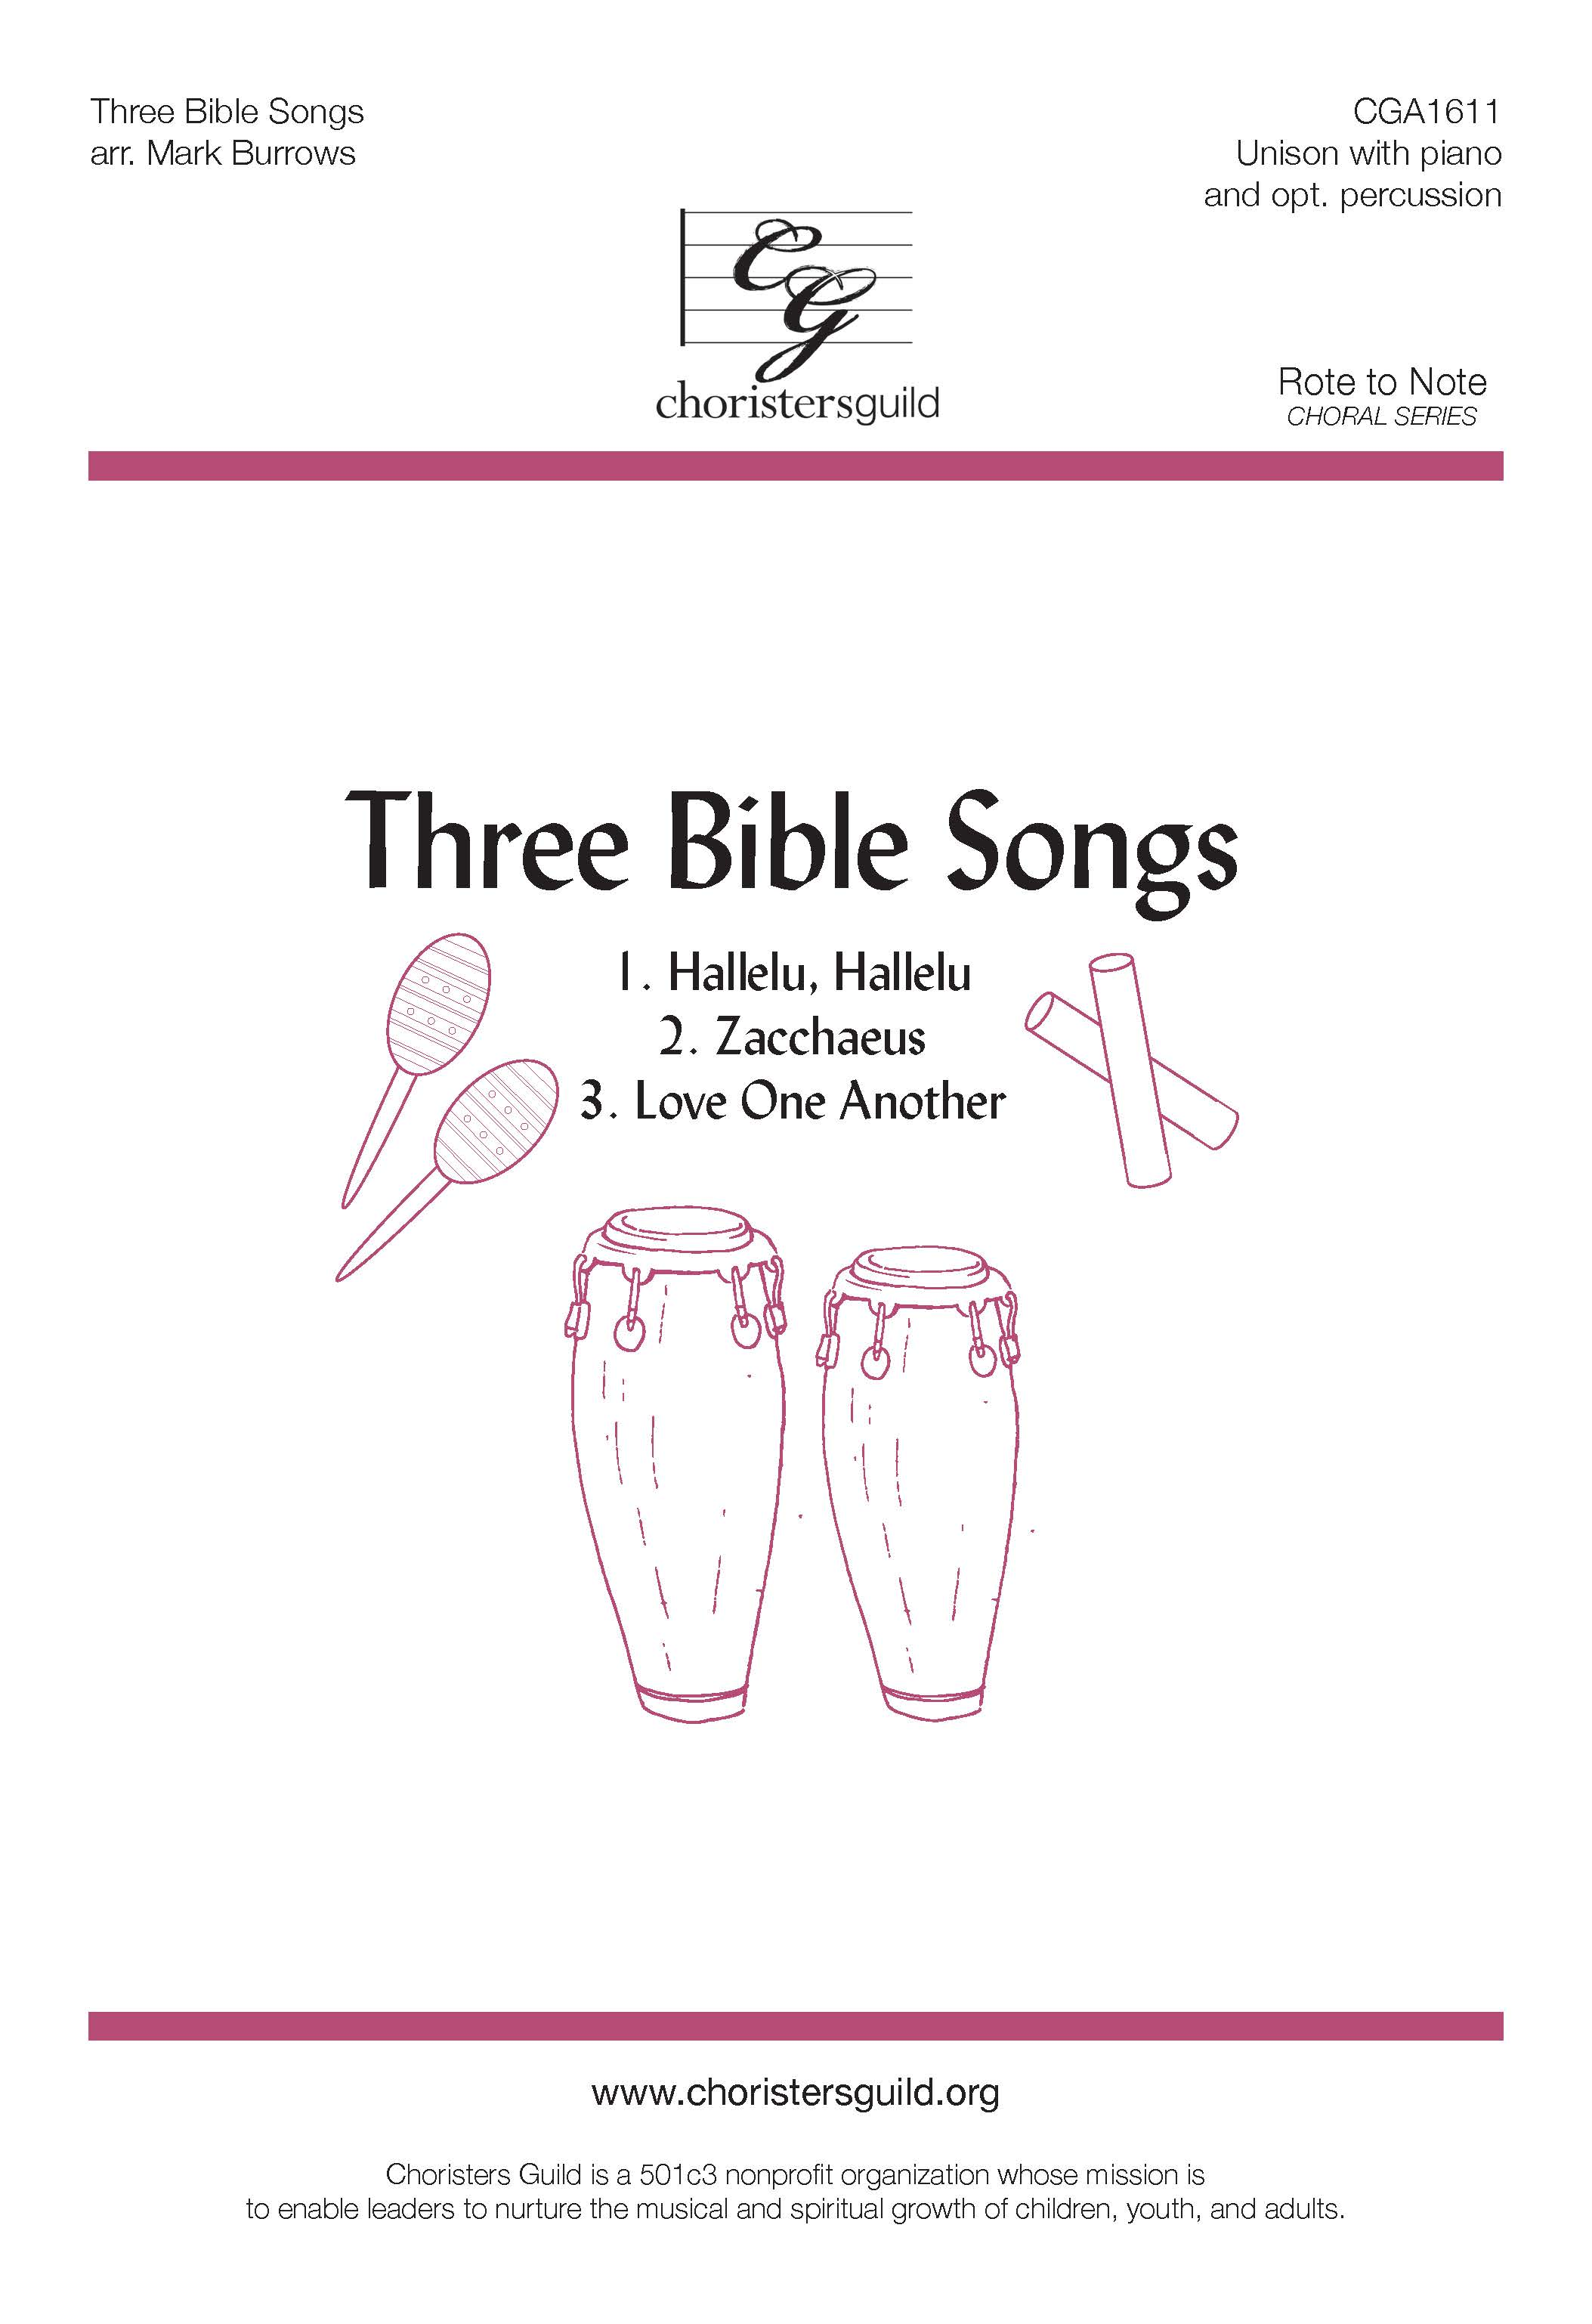 Three Bible Songs: Hallelu, Hallelu/Zaccheus/Love One Another - Unison